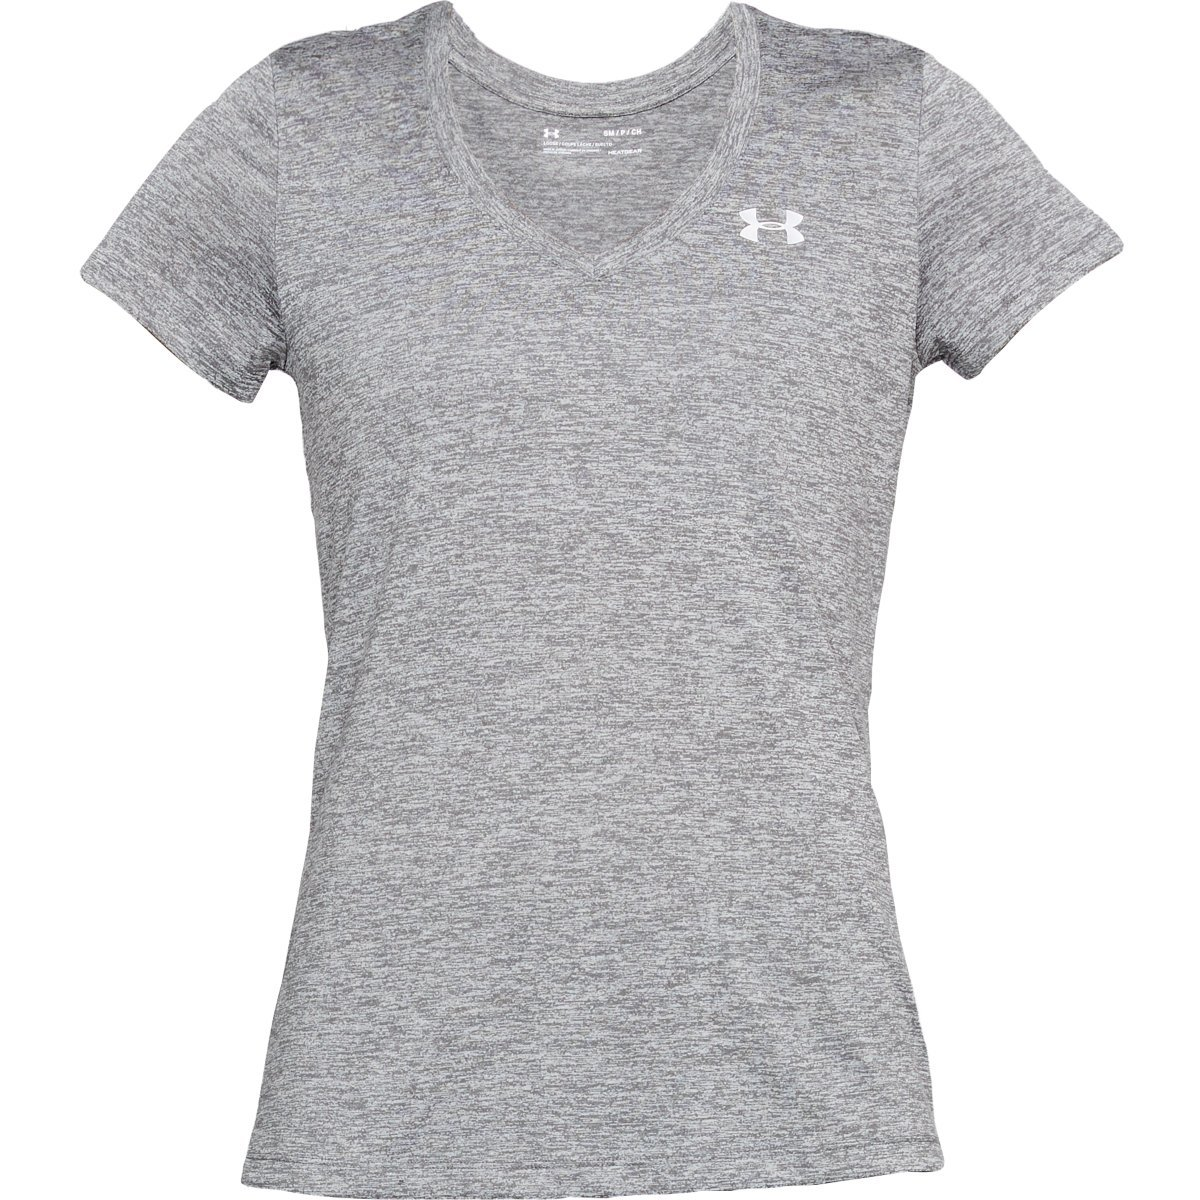 Under Armour Women's Tech Twist V-Neck Tee - Black, S